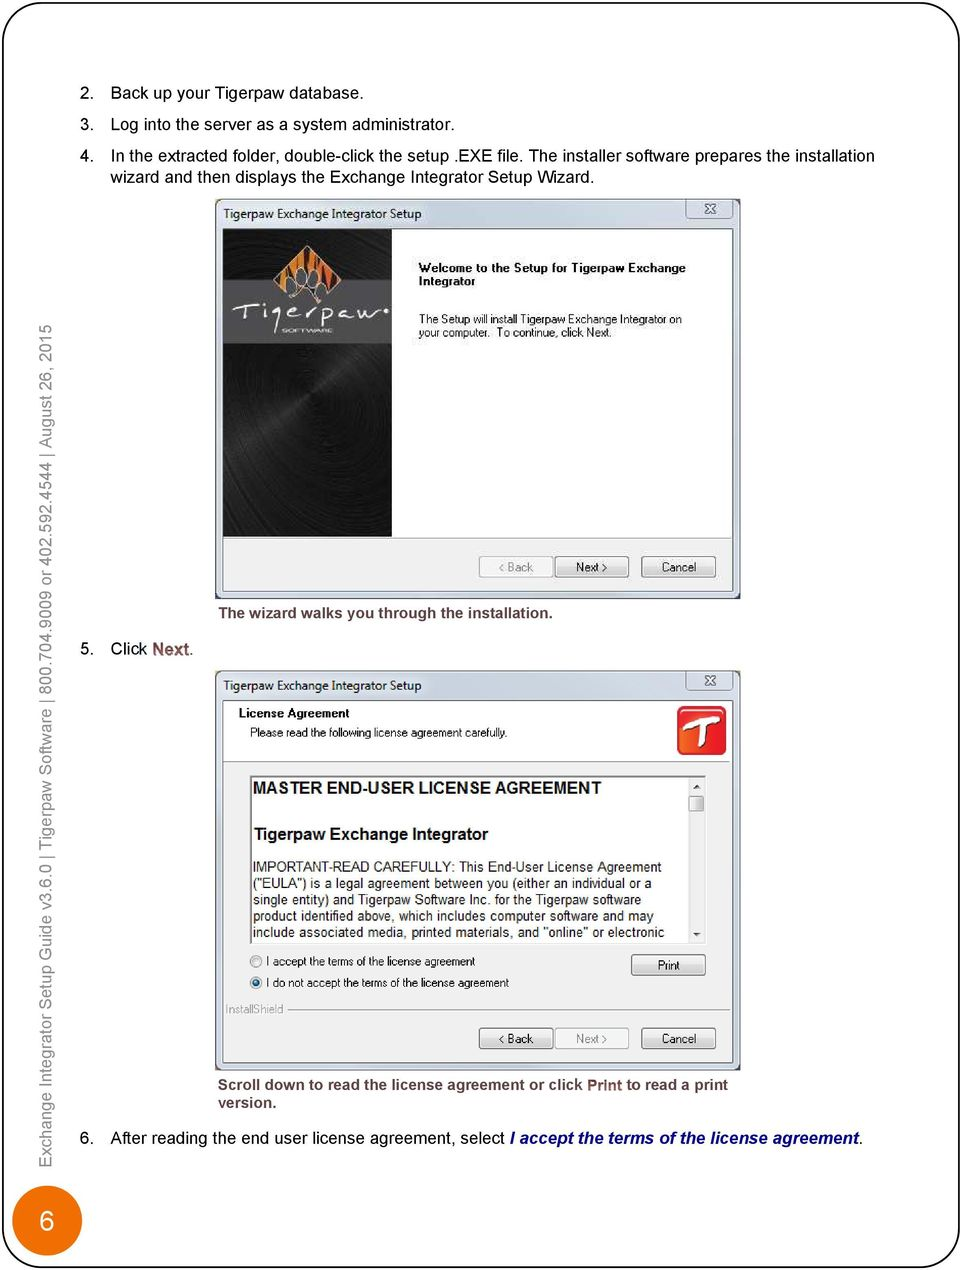 The installer software prepares the installation wizard and then displays the Exchange Integrator Setup Wizard.